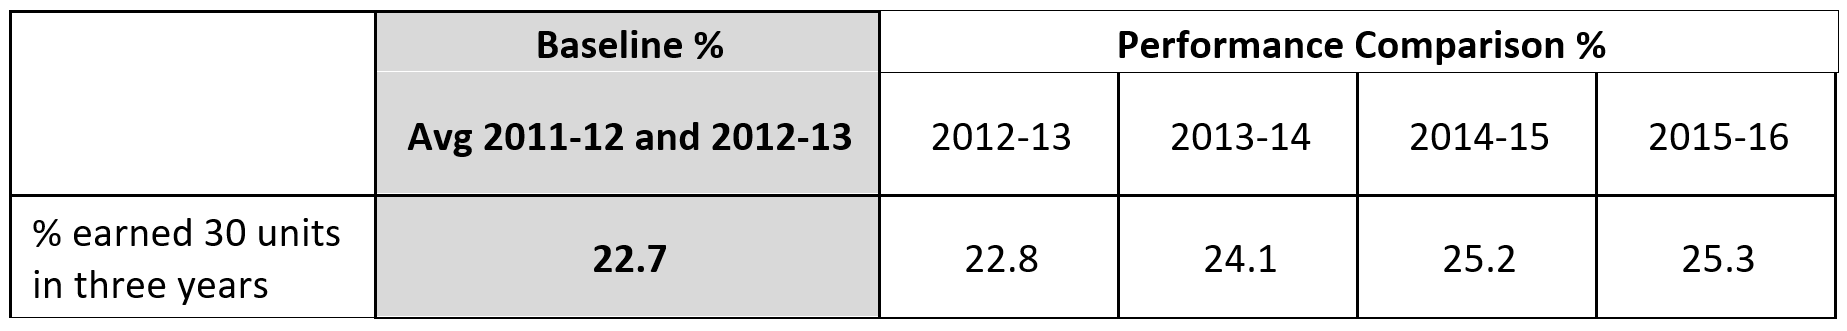 Table showing percentage of degree/transfer seeking students who earned 30 units in three years